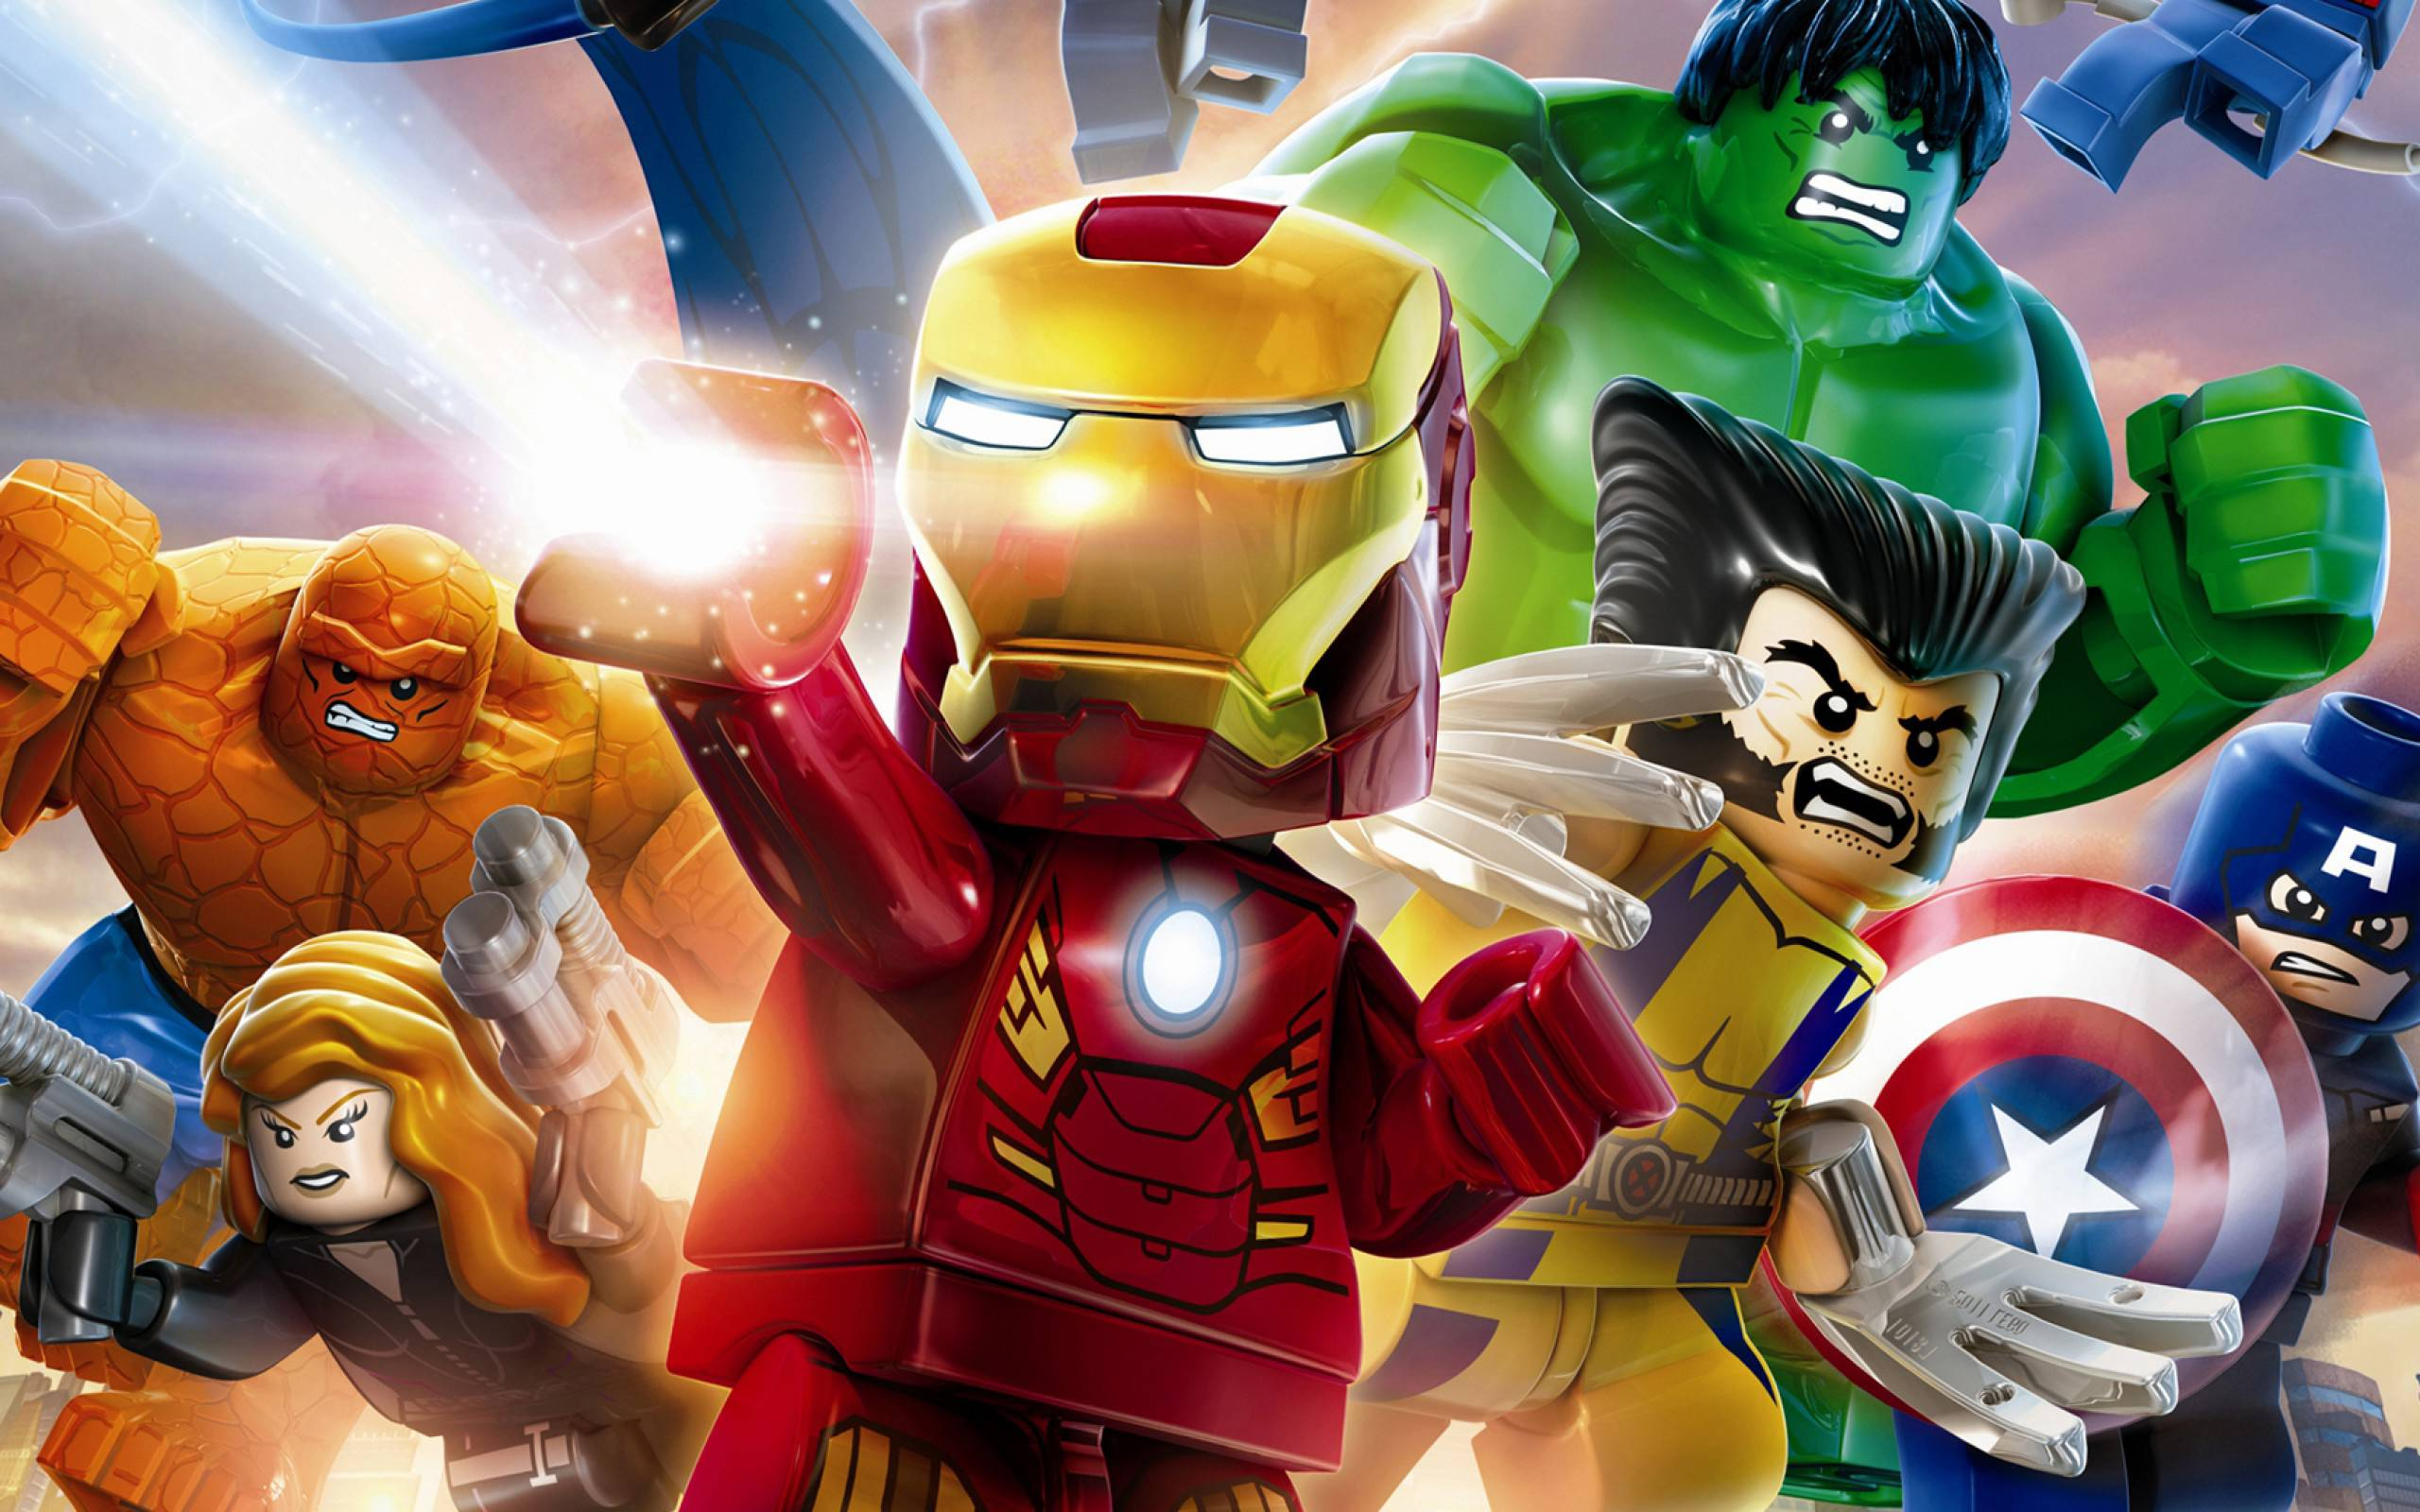 lego marvel wallpaper for desktop - photo #6